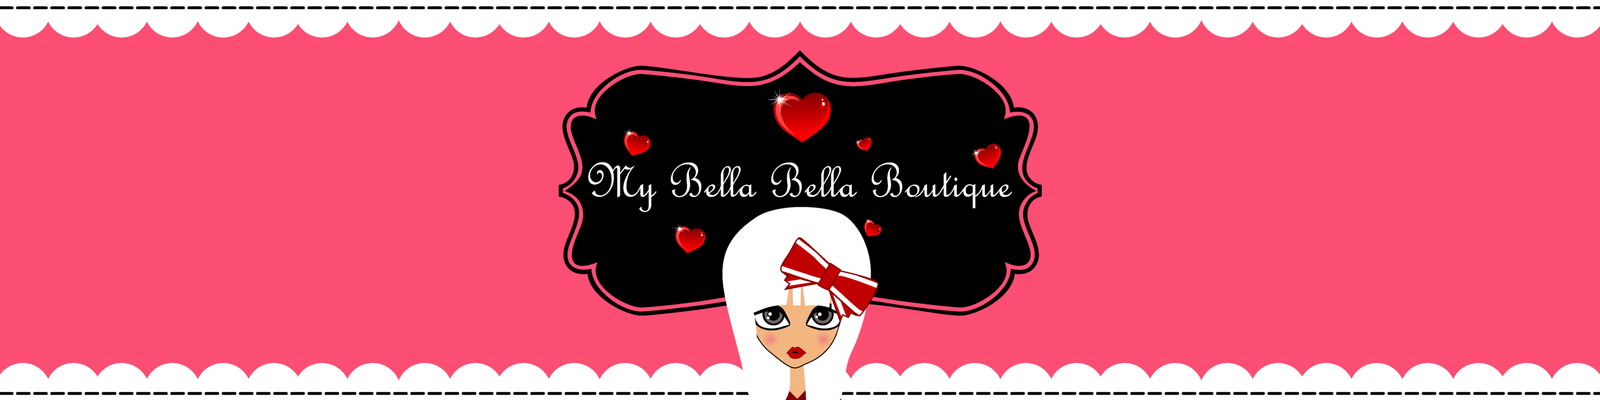 My Bella Bella Boutique